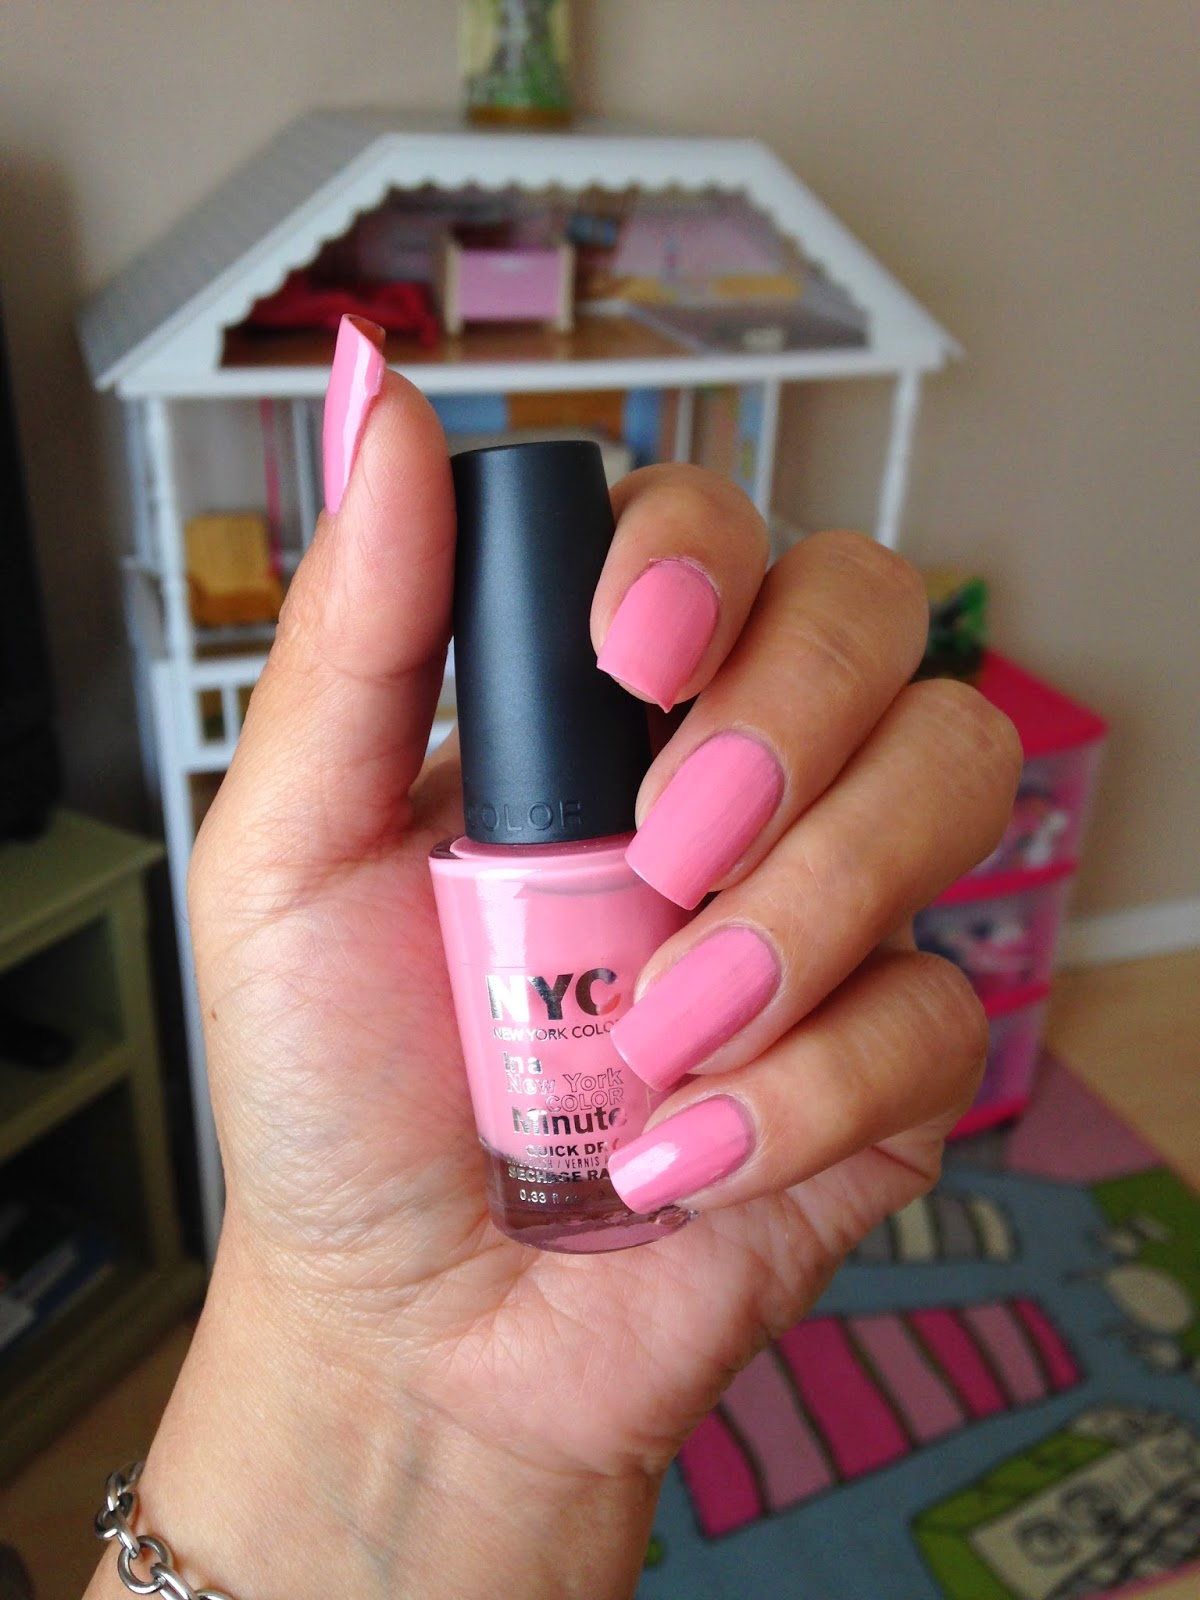 New York Color In A New York Minute Lafayette Pink #Swatches - Sammy ...